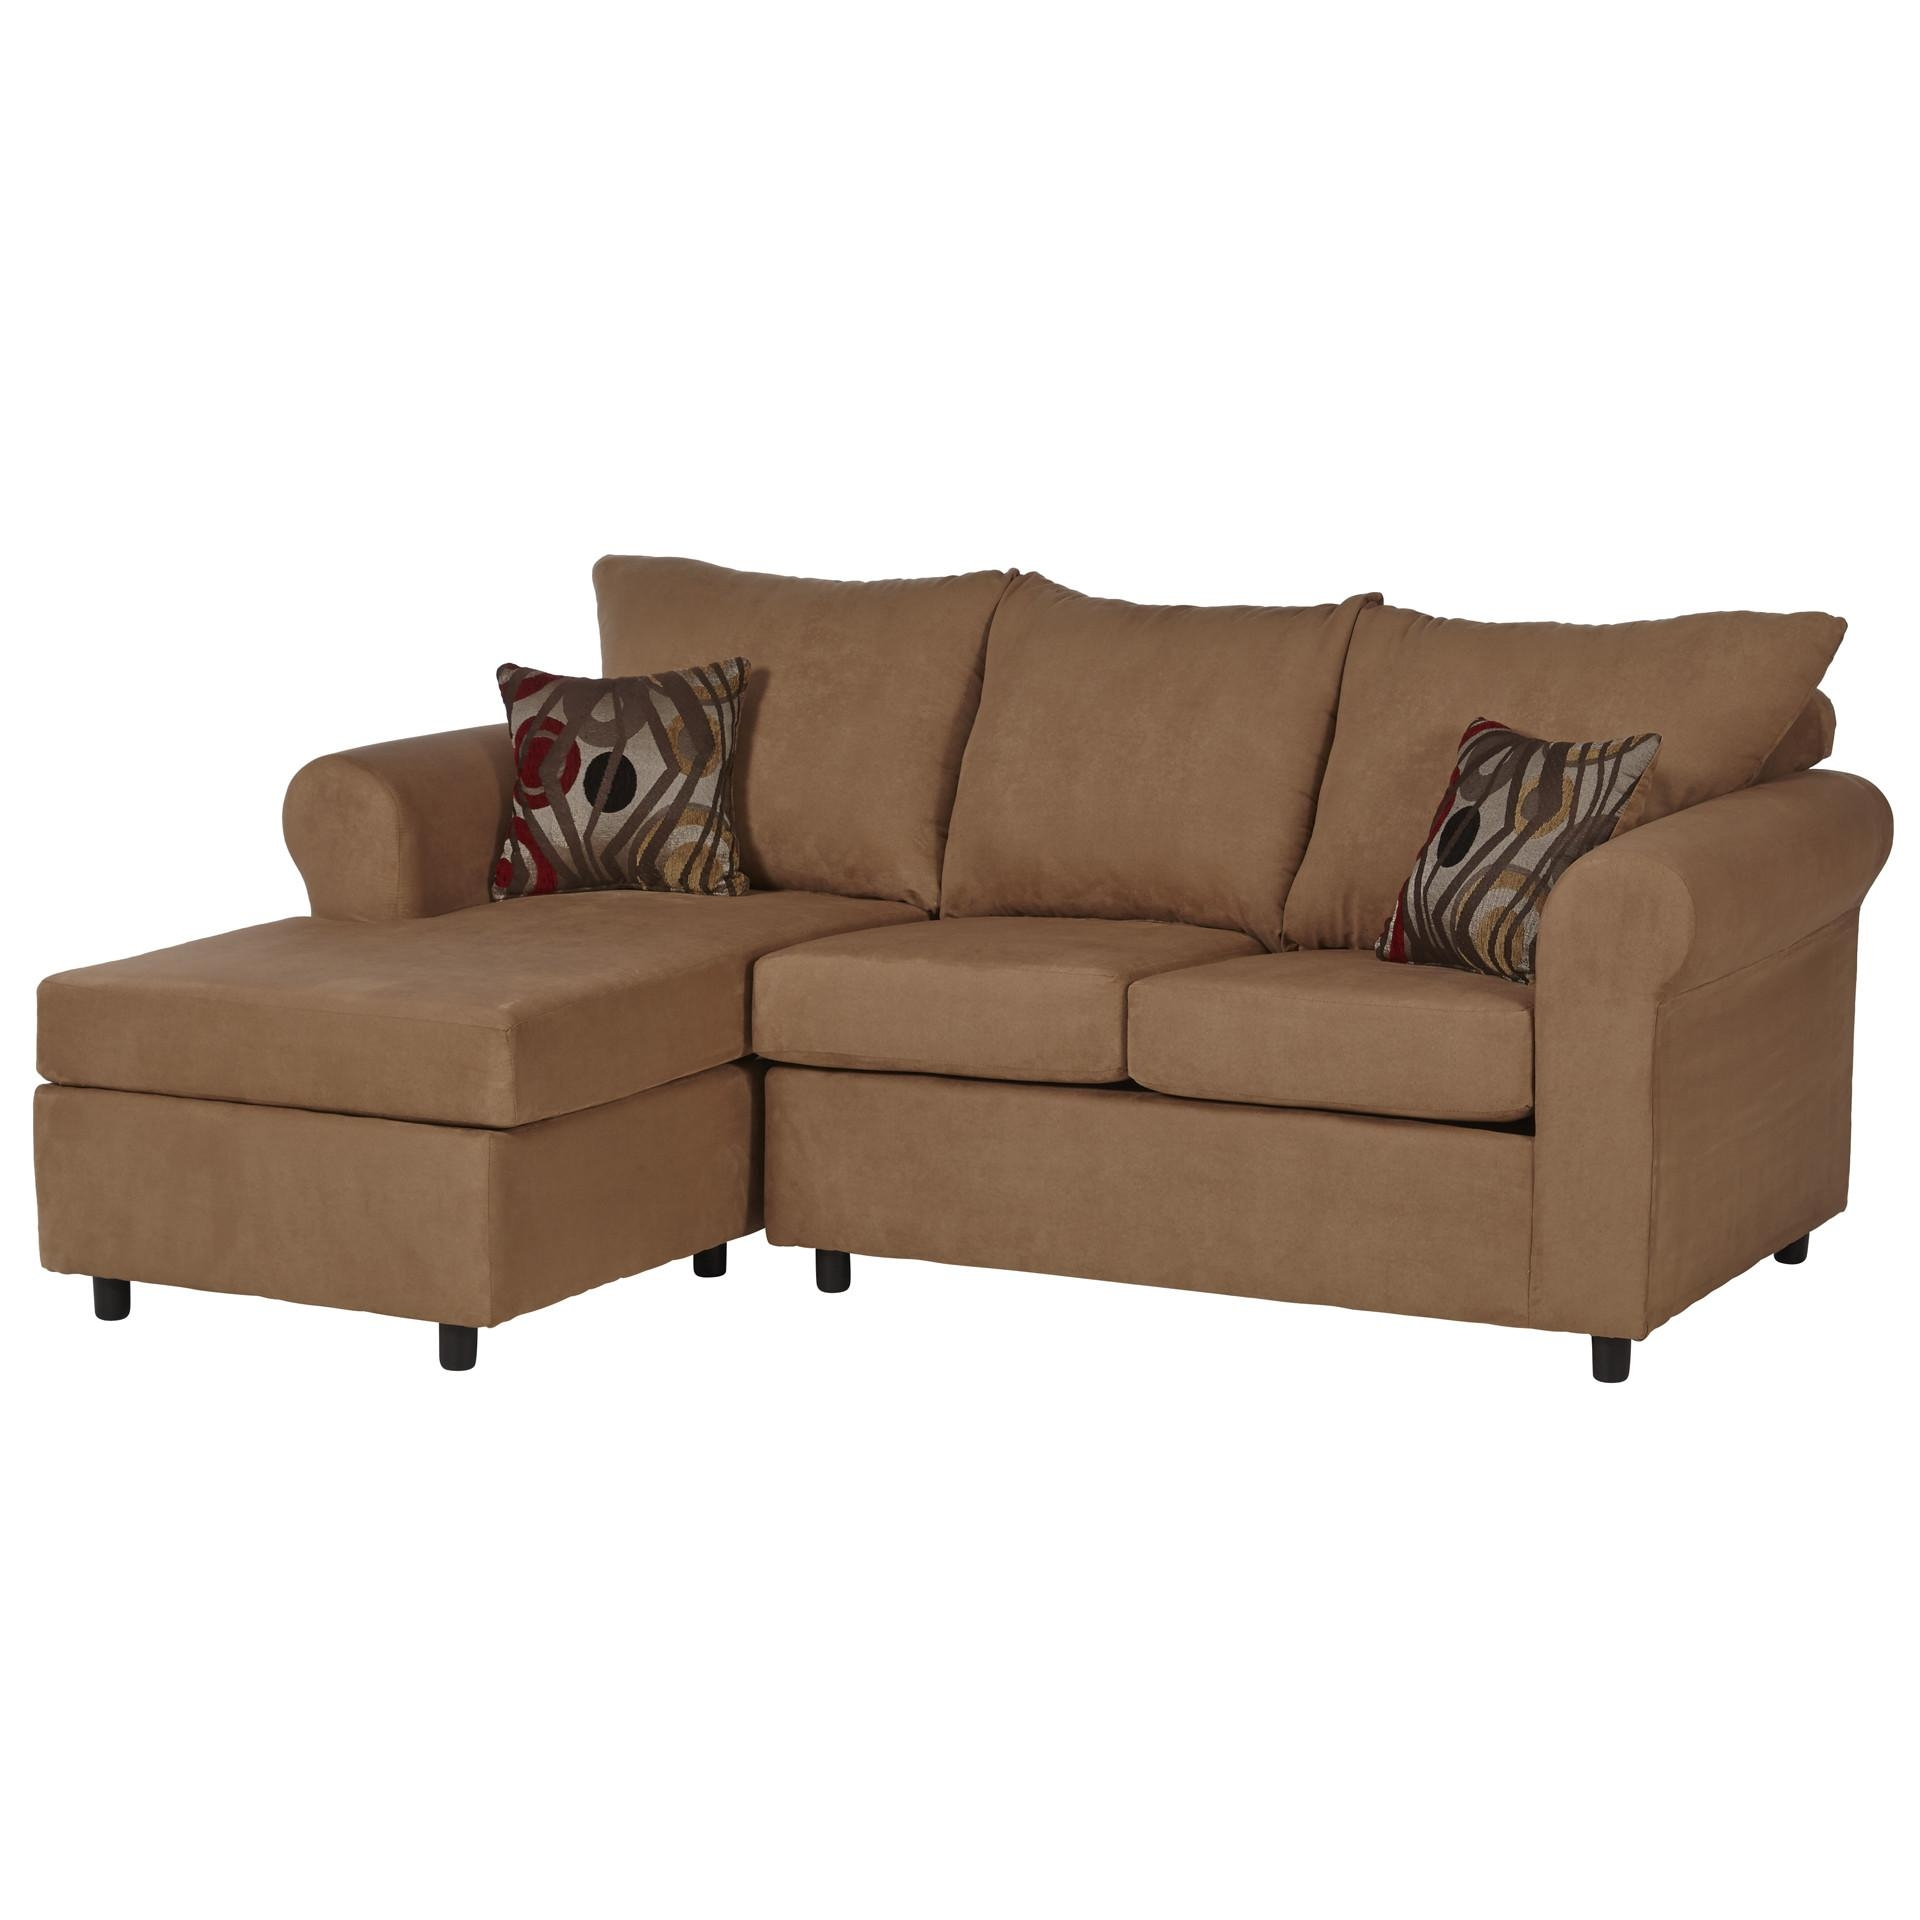 Sectional Sofa Design : Sectional Pit Sofa Small Motif Pillows For Pit Sofas (Photo 18 of 20)